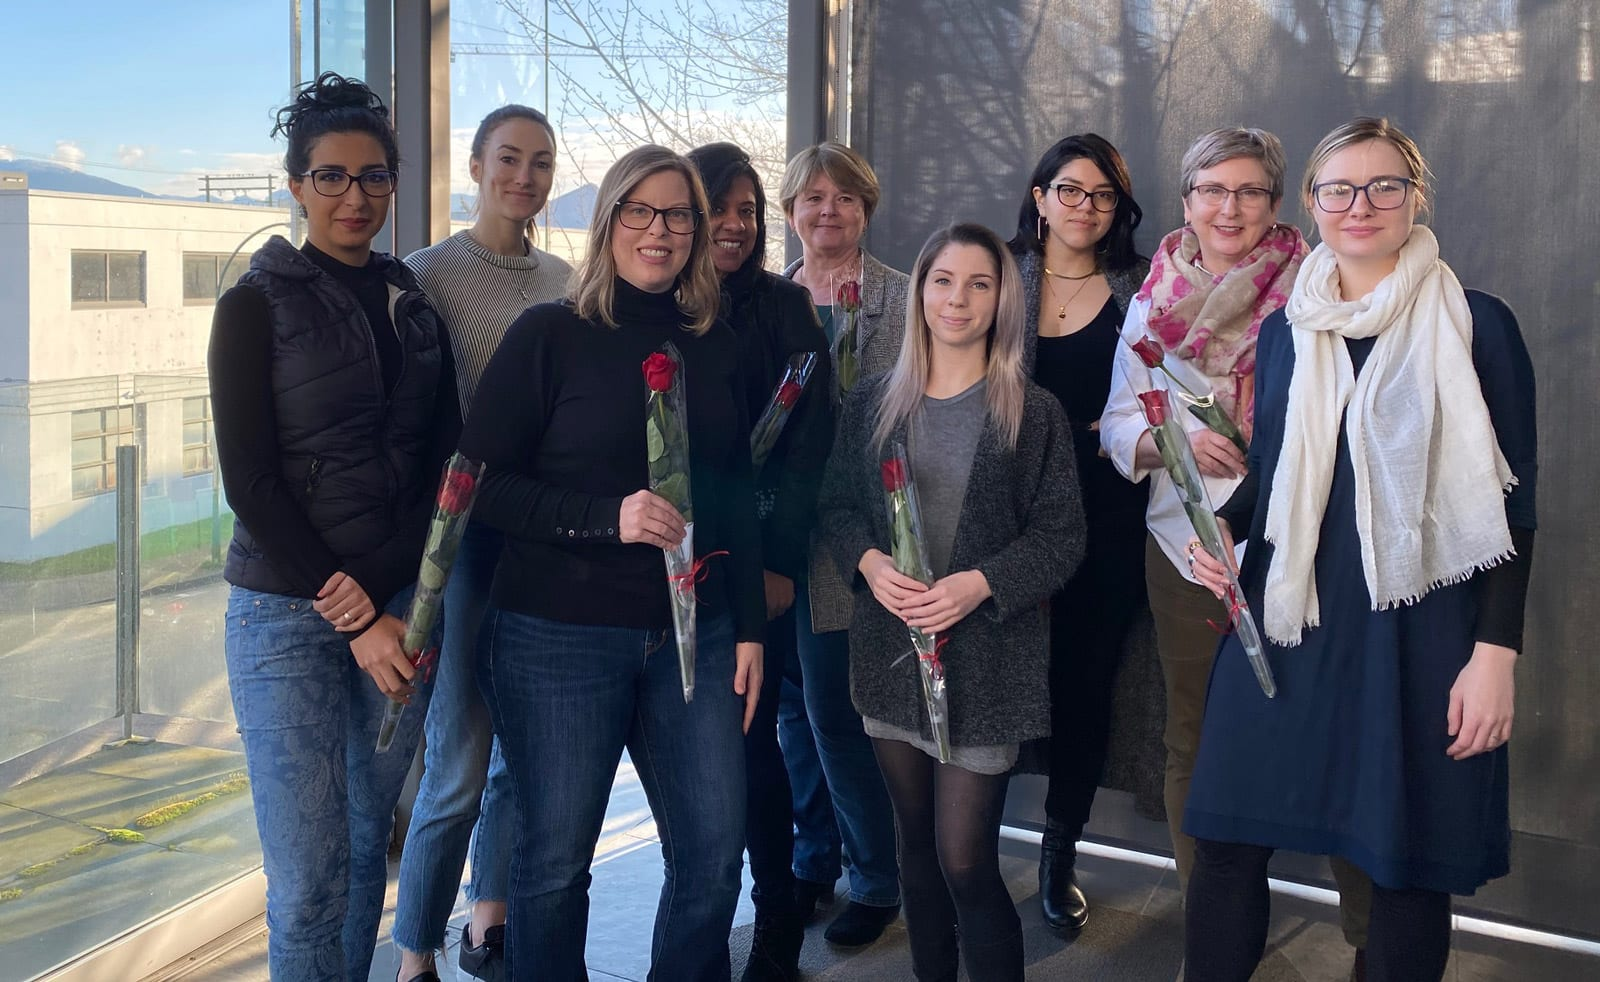 Ladies at CDC Construction celebrating International Women's Day with roses in hand